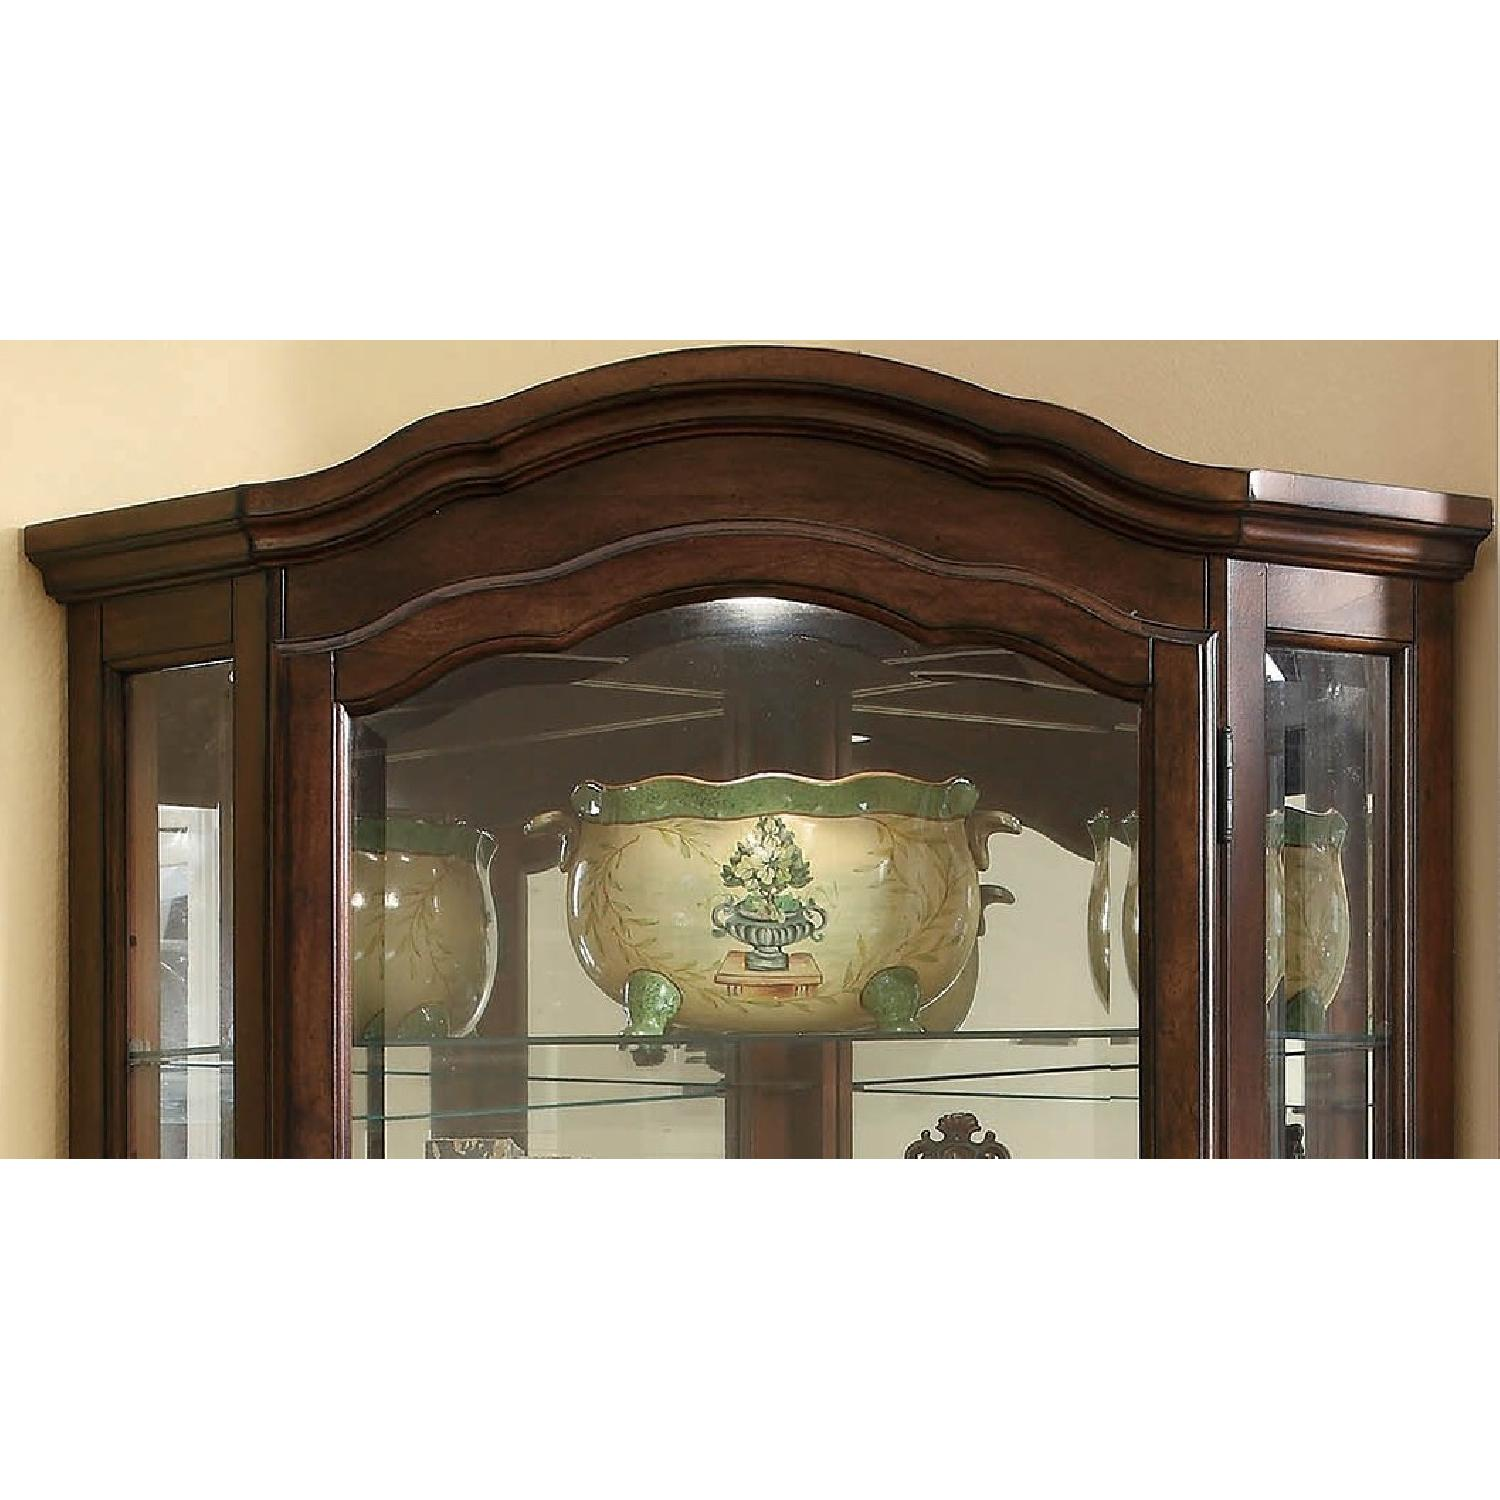 Curio Cabinet With Intricate Woodwork Carvings - image-10